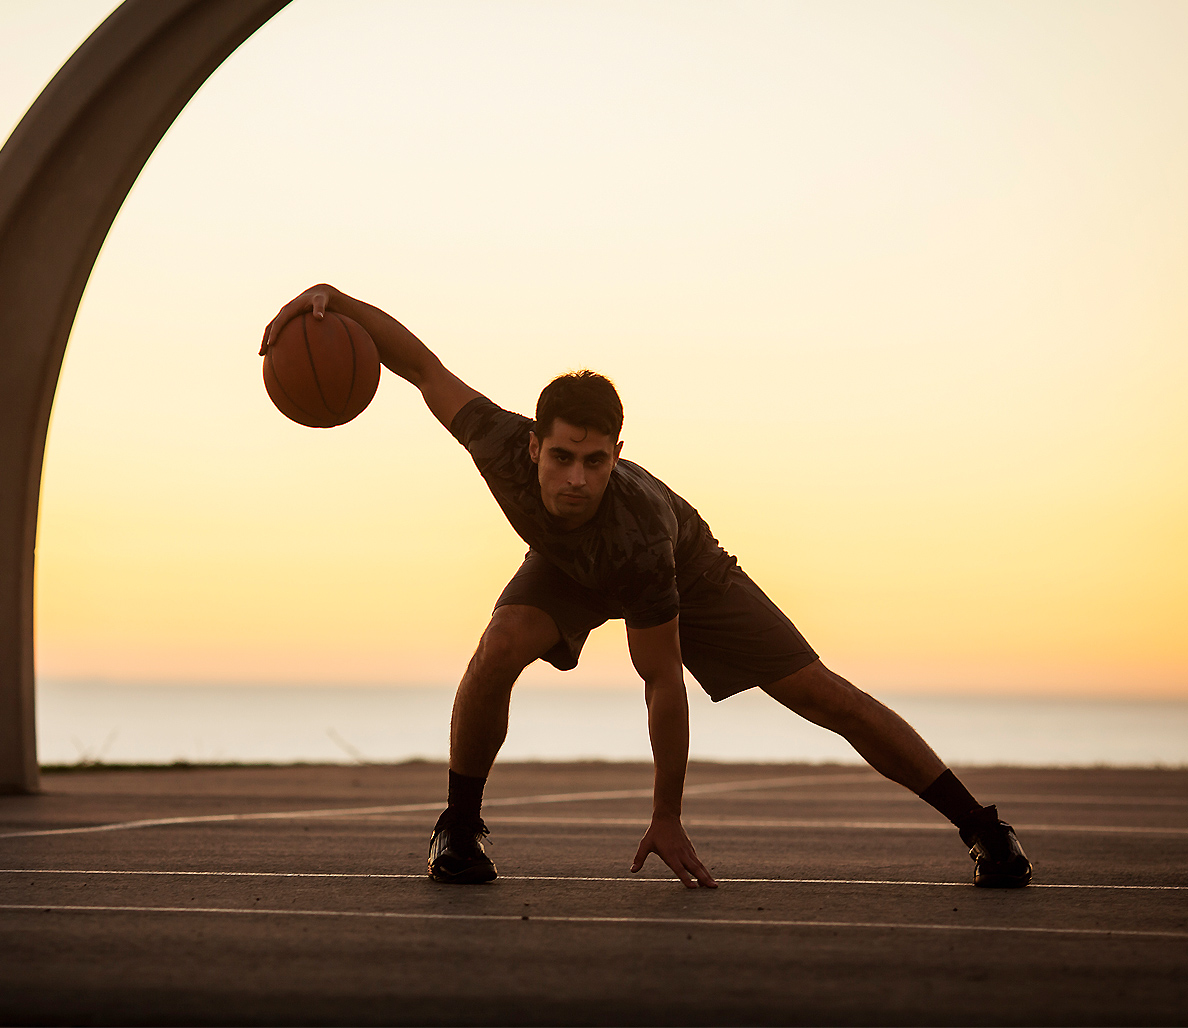 How to become a better basketball player according to nba legends ccuart Choice Image